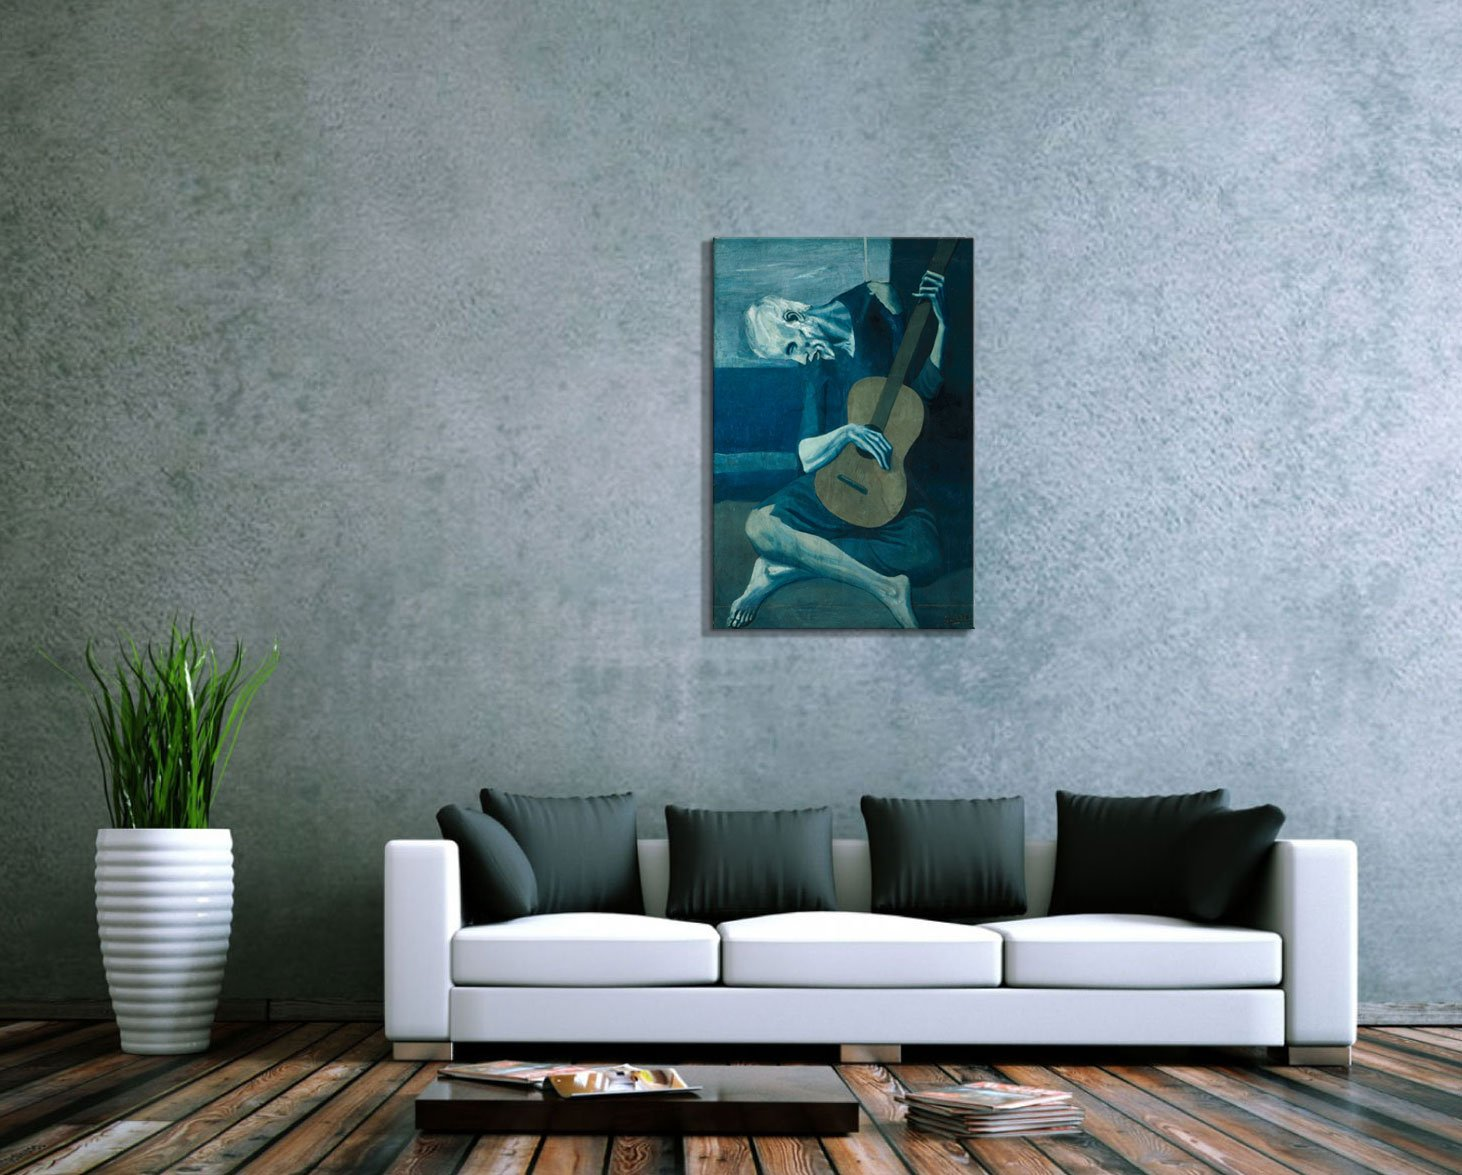 Buy Picasso Painting Now!